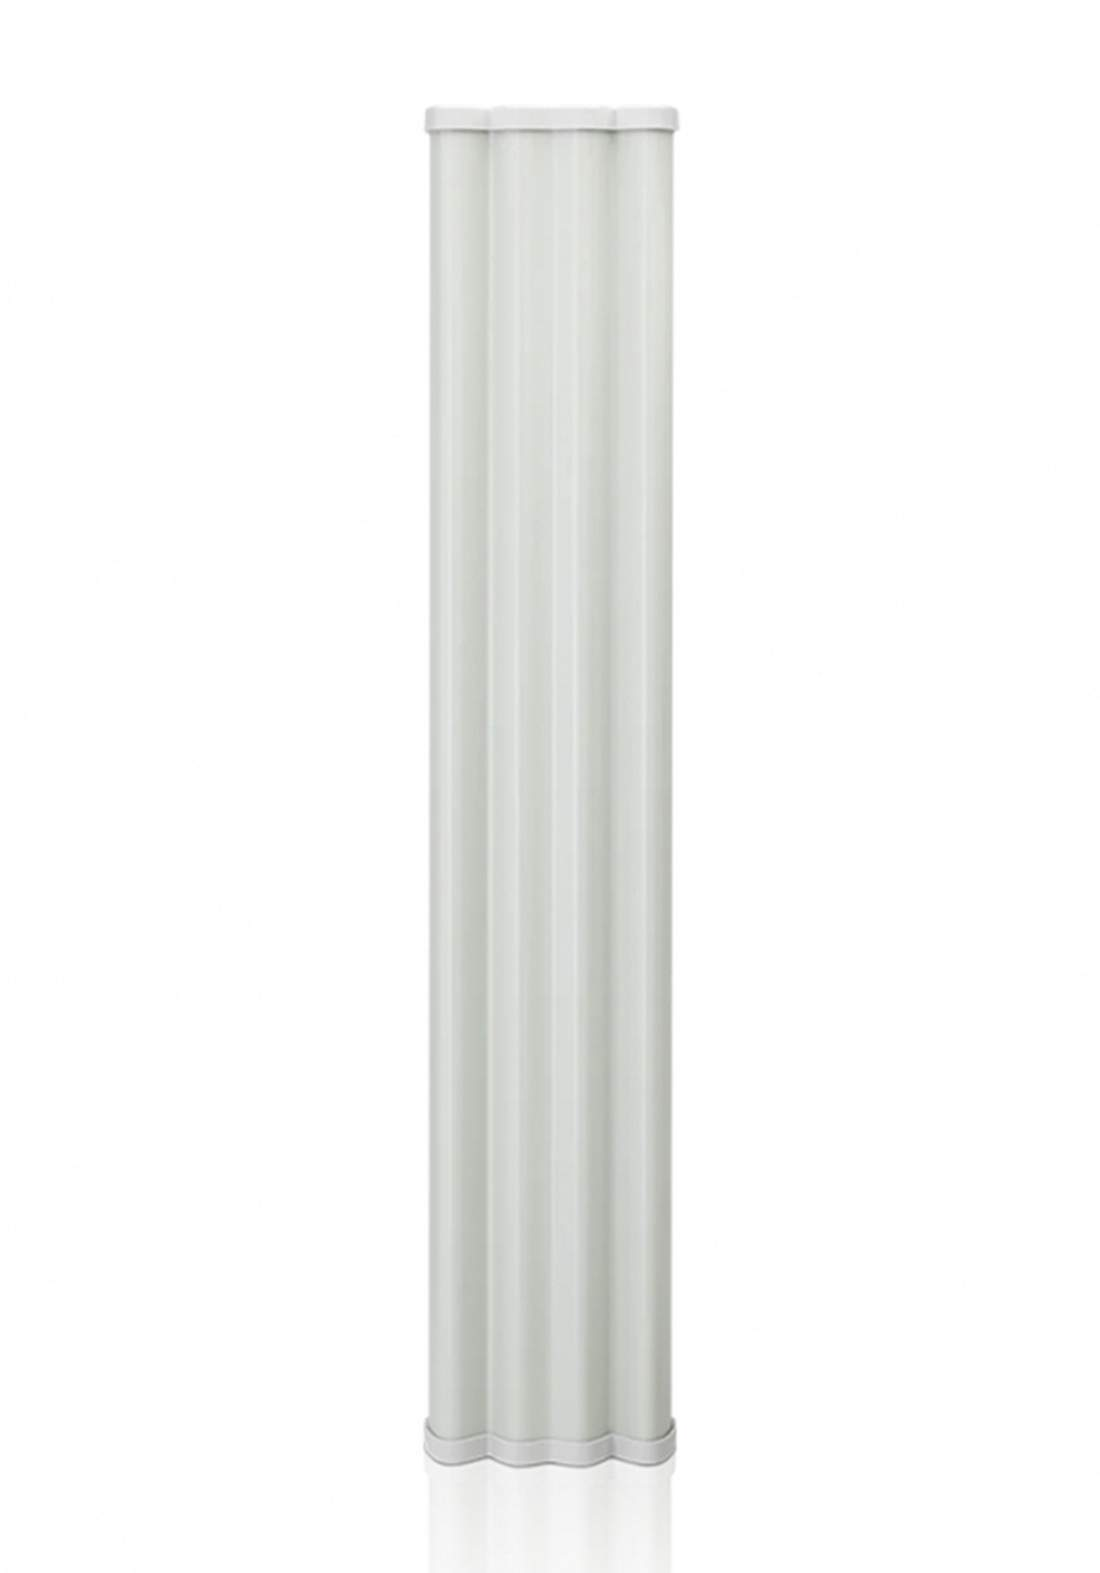 Ubiquiti Networks 5G-20-90 AirMAX BaseStation Sector Antenna - White هوائي